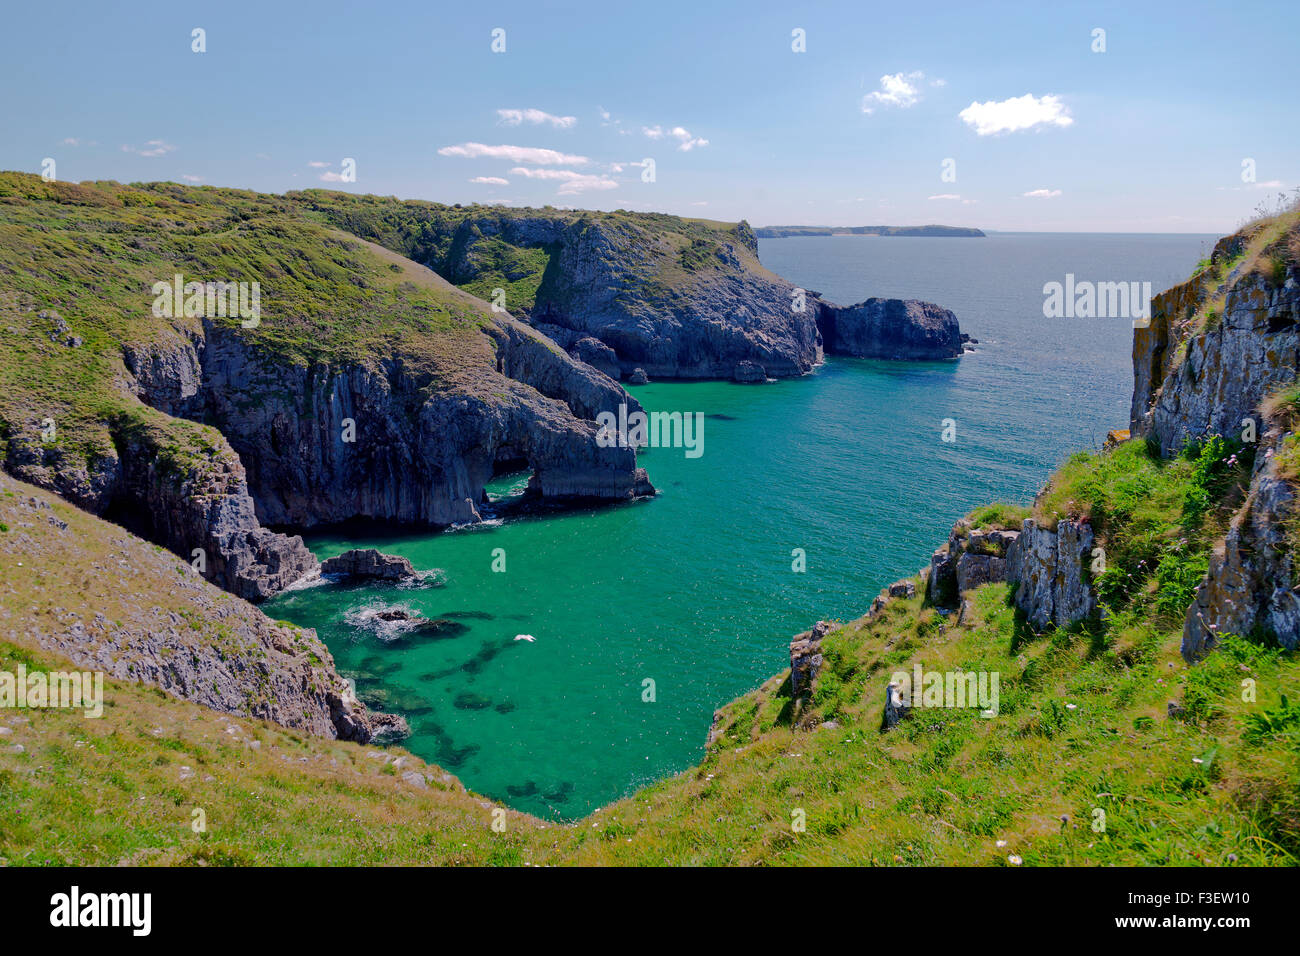 Looking along the dramatic coastal scenery towards Lydstep Point & Caldey Island in the Pembrokeshire Coast - Stock Image